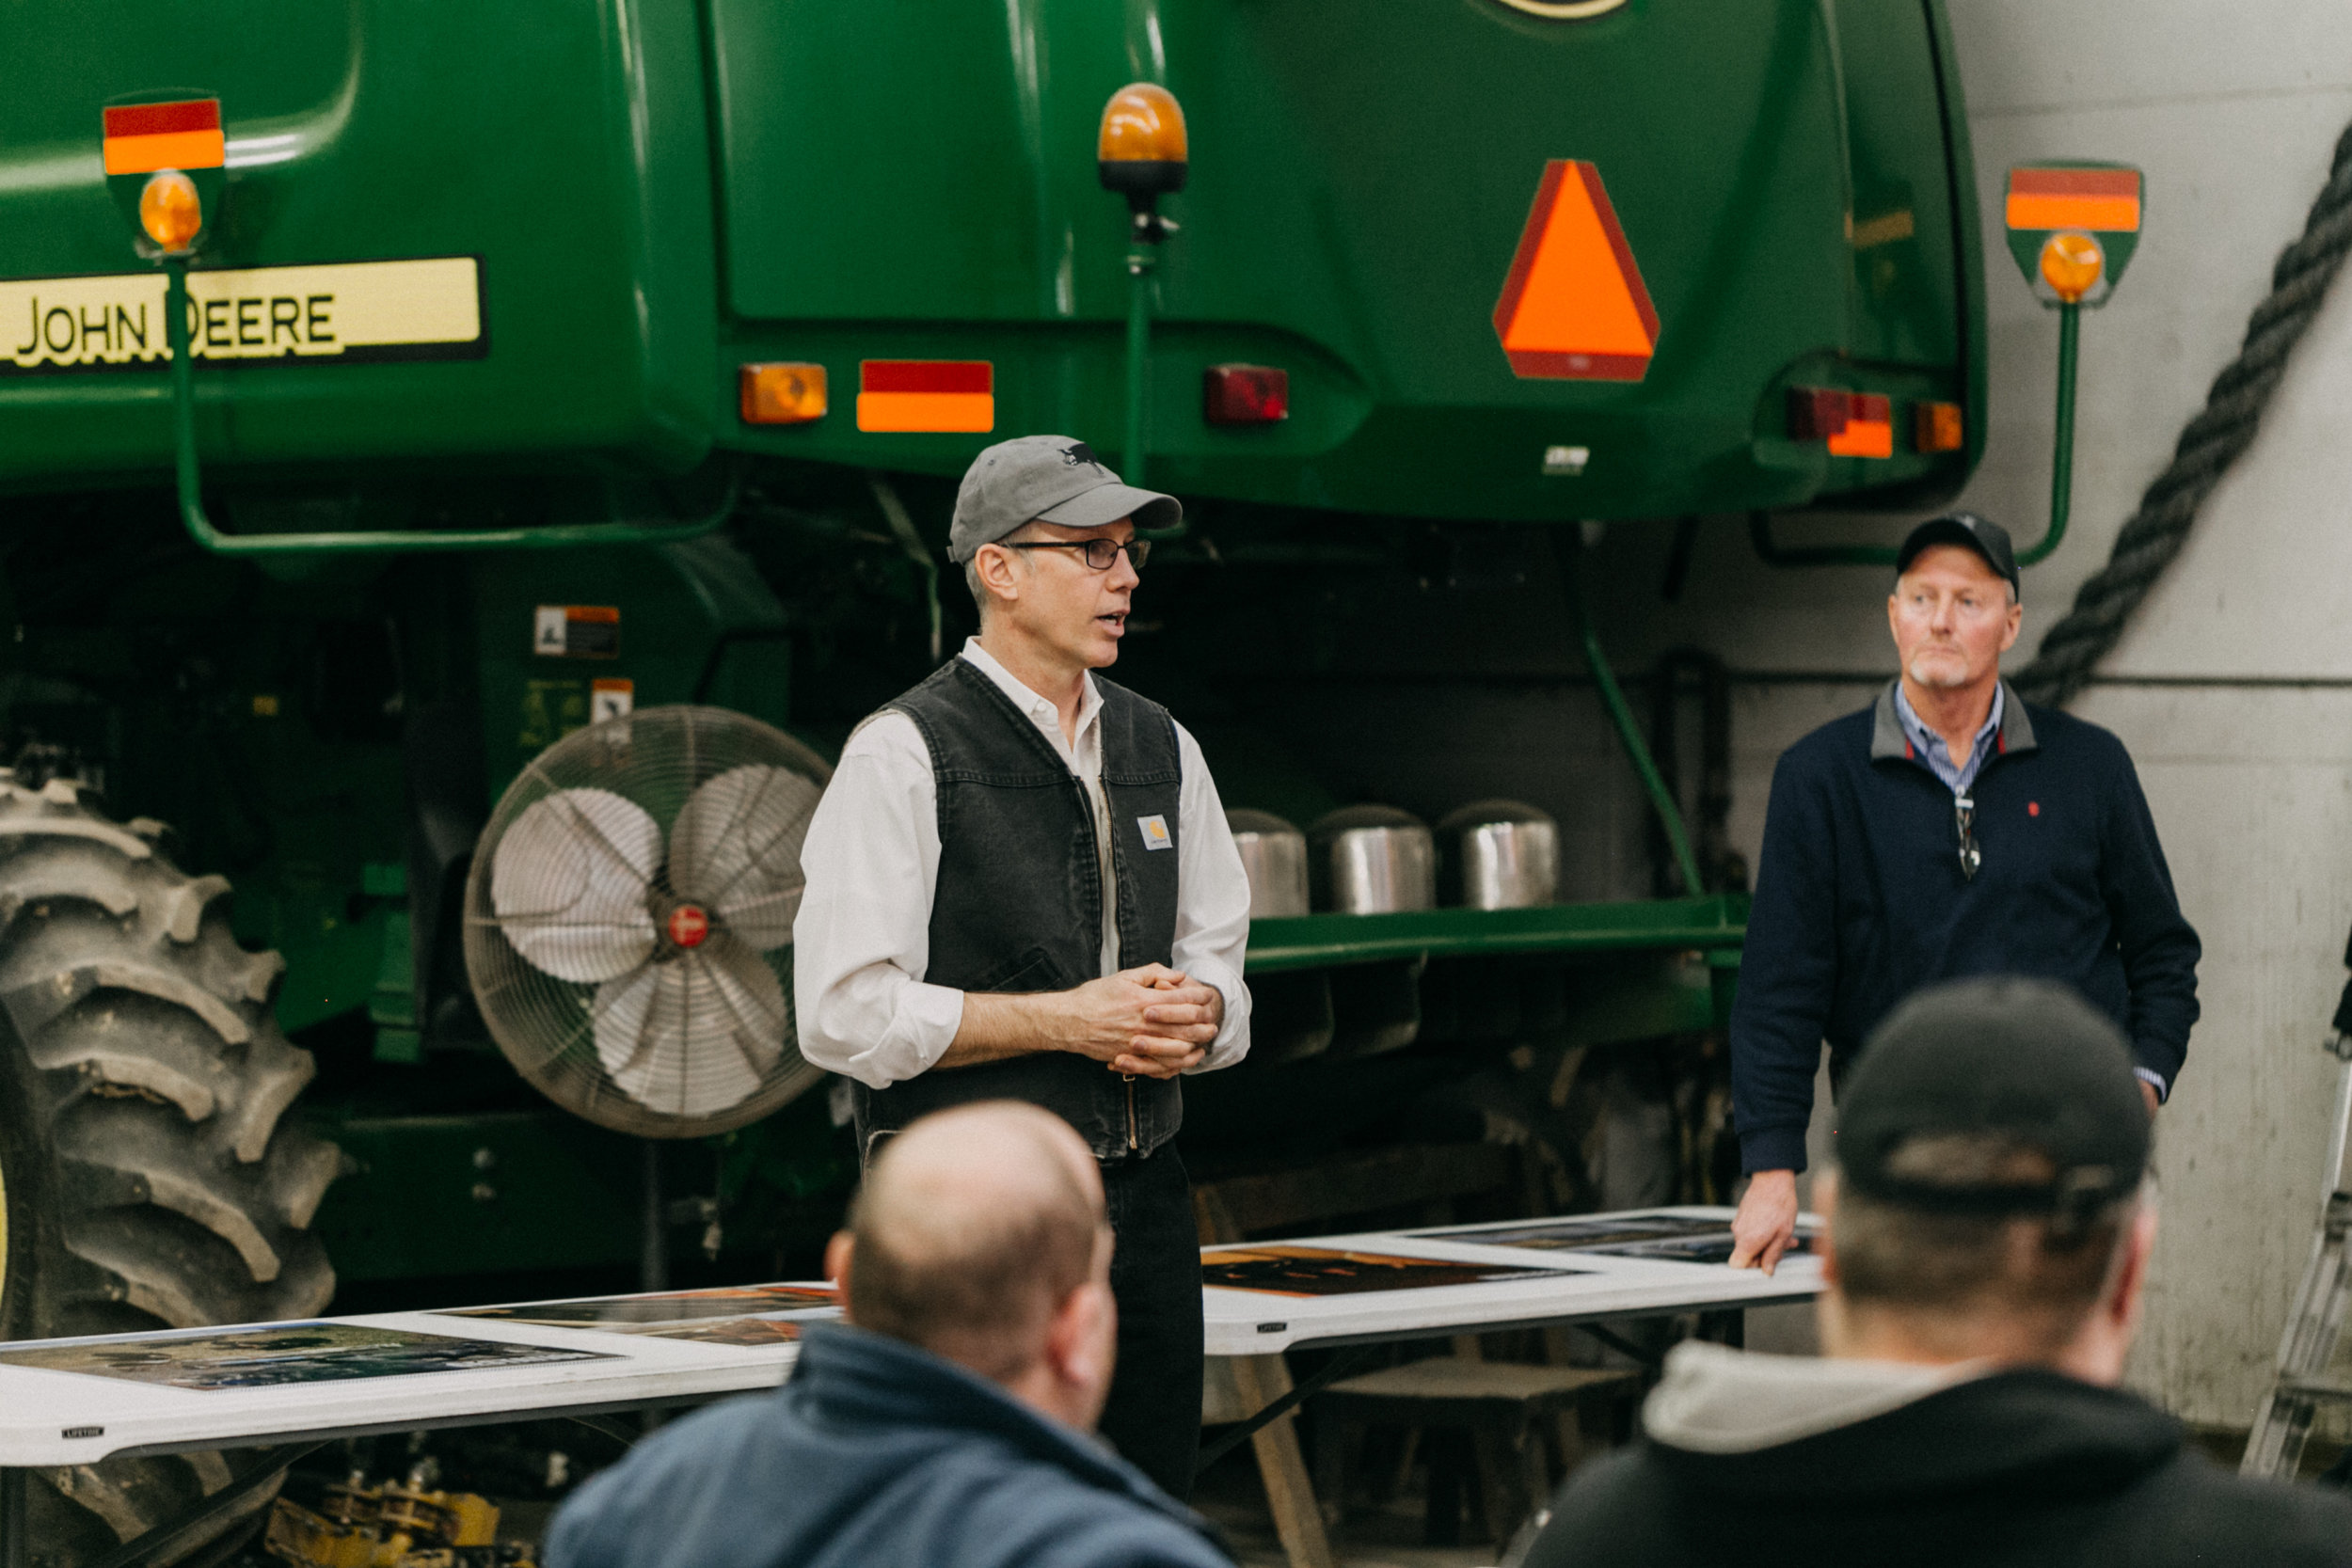 We believe that education is incredibly important, so we strive to keep our retailers up to date and understanding of our processes (often with field trips to our farms).